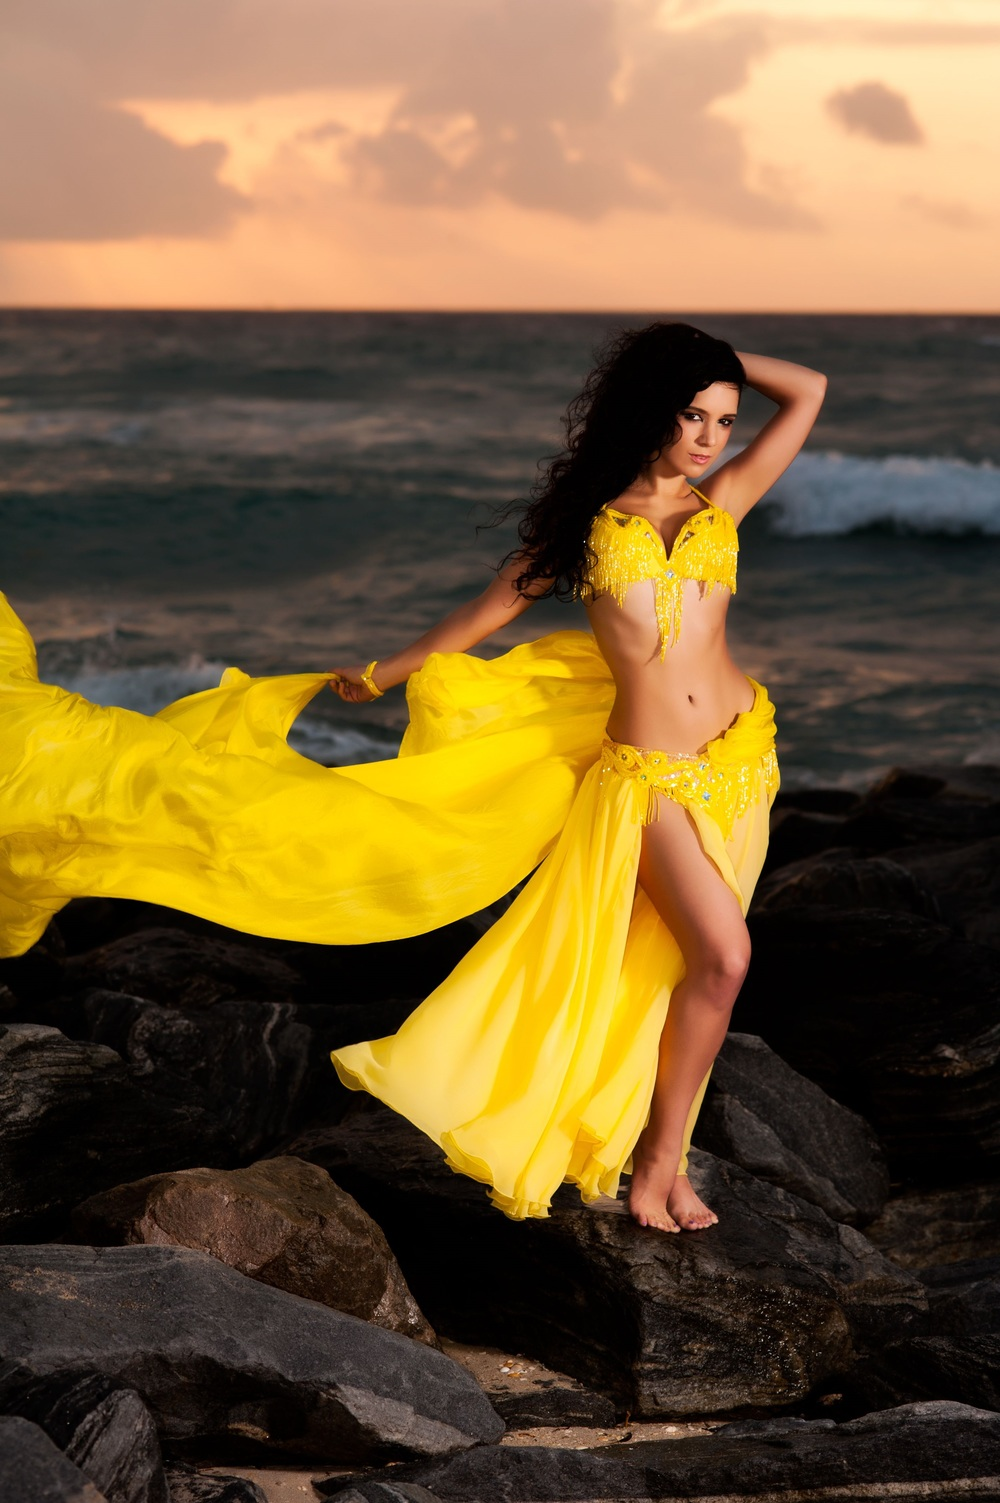 Yellow Bella South Florida belly dancer